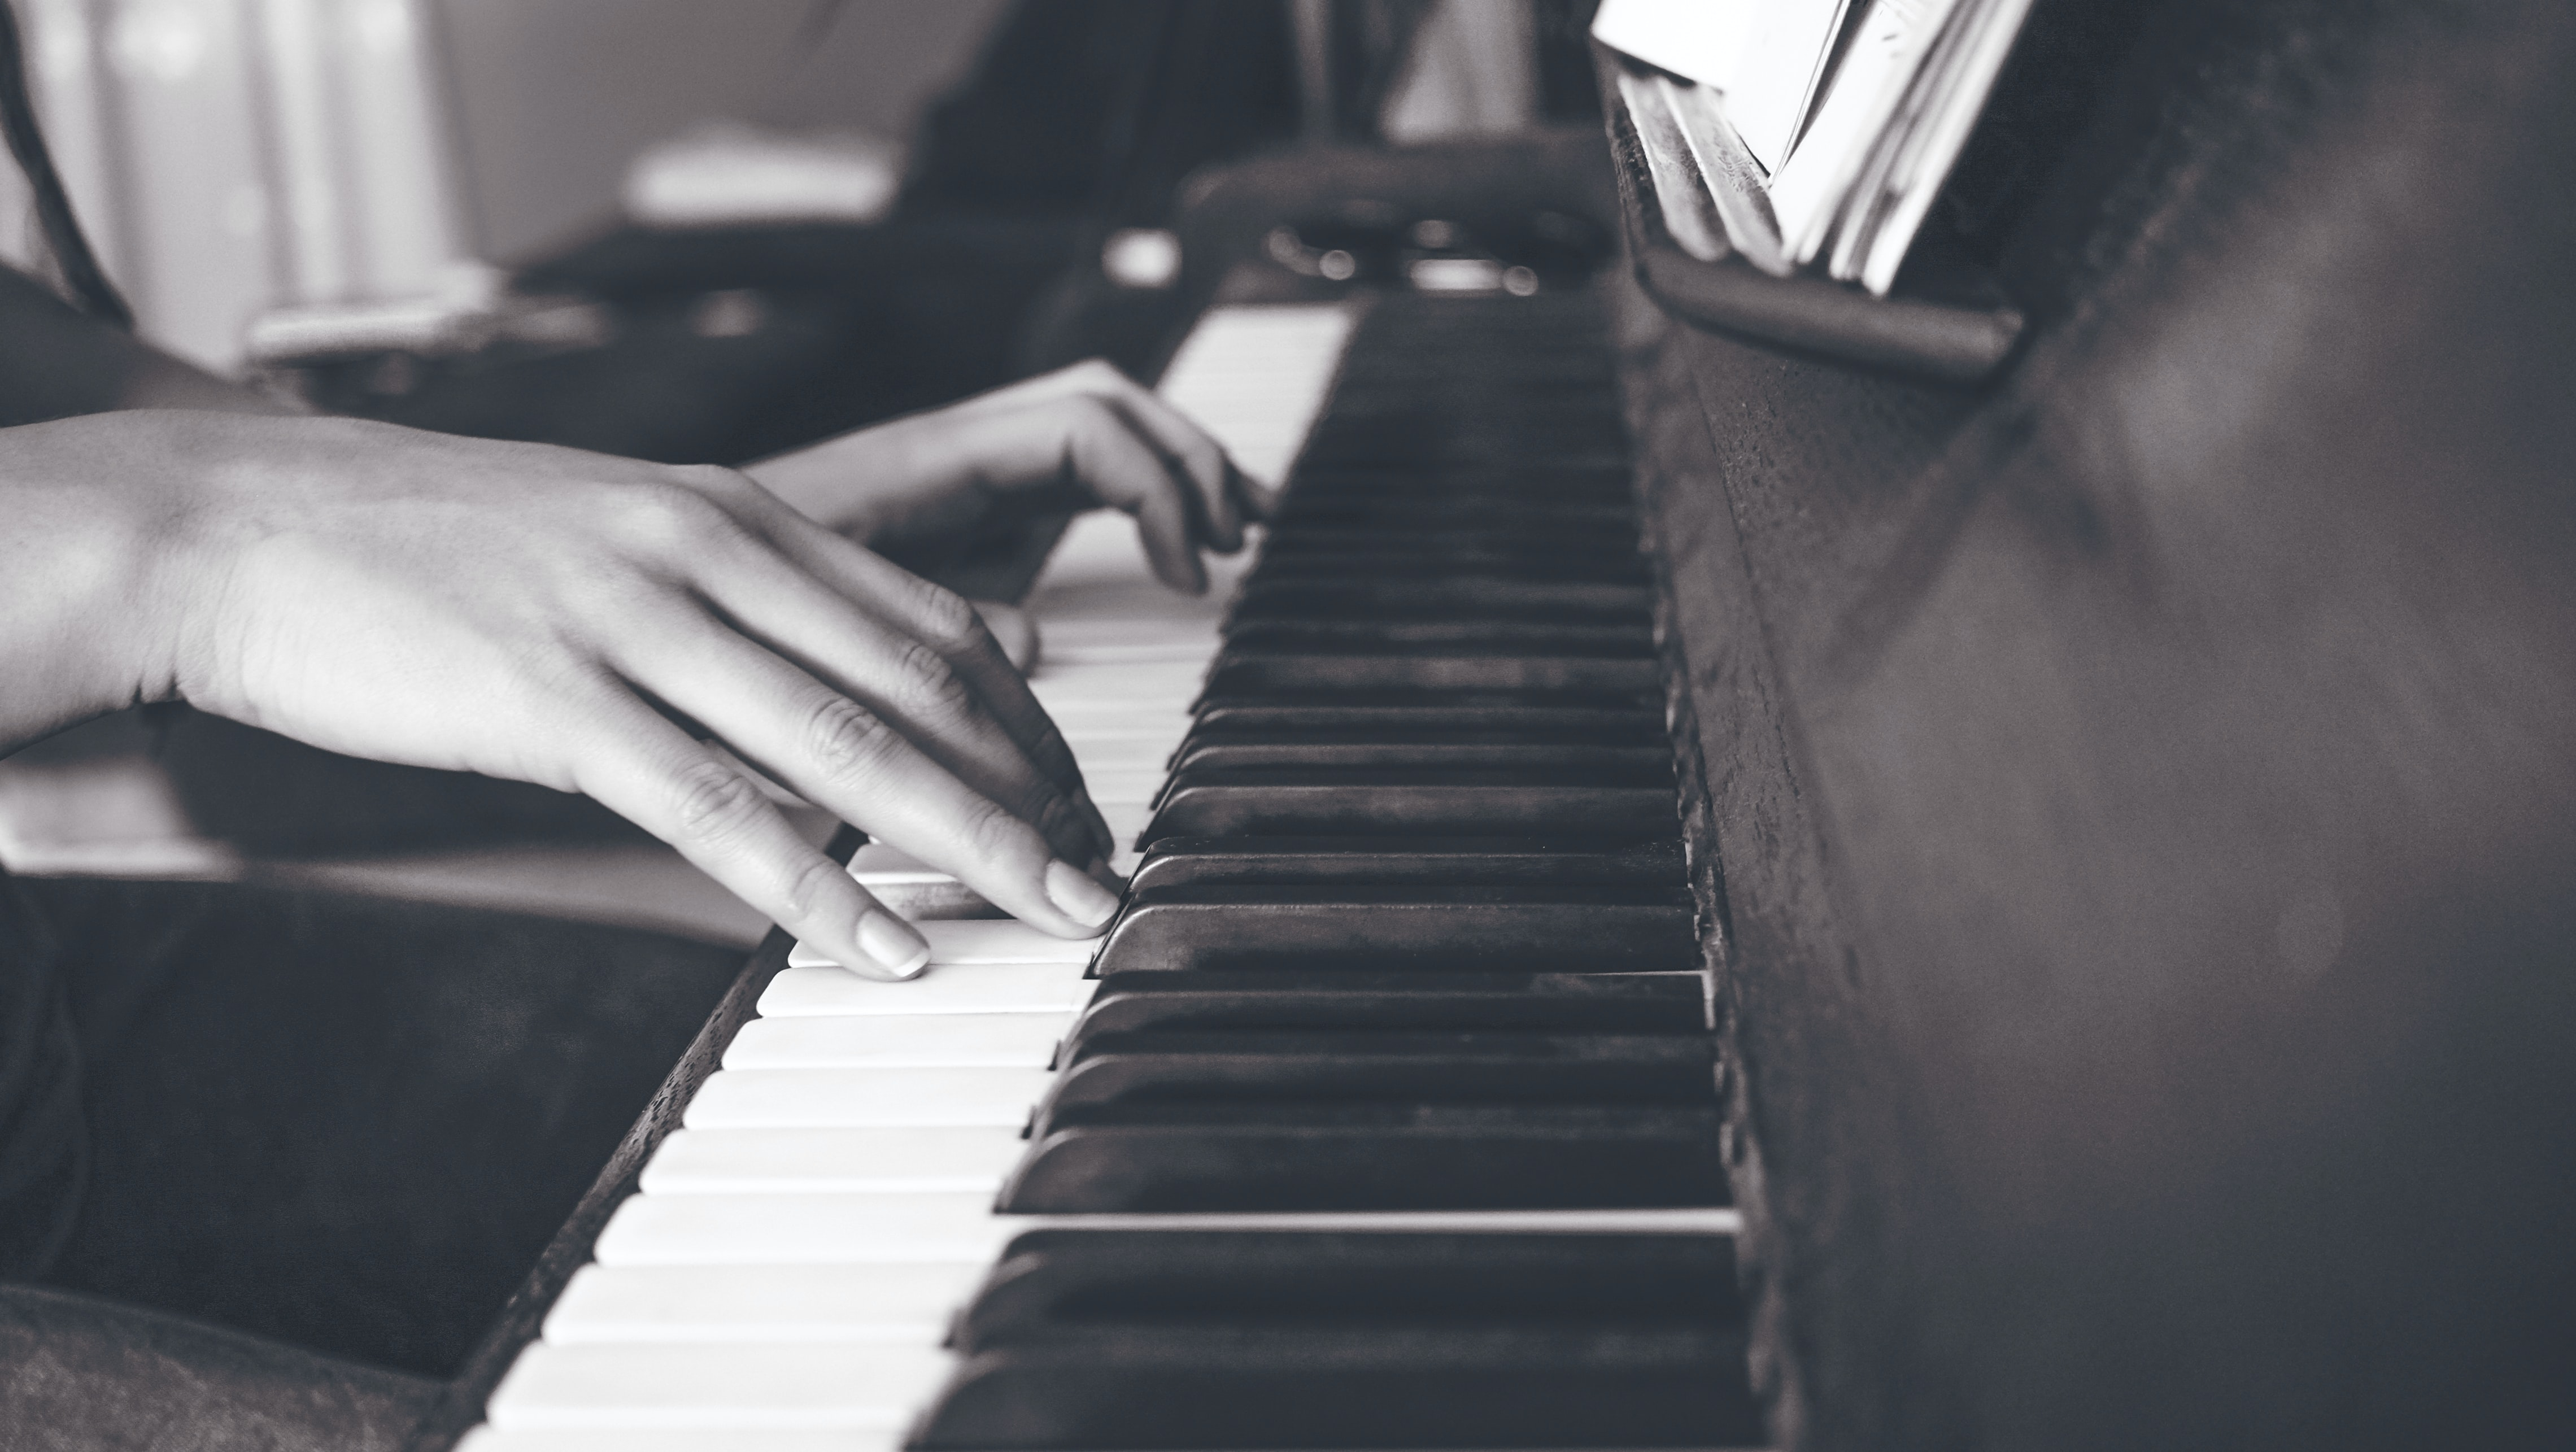 A black-and-white shot of a woman's hands on the keyboard of a piano